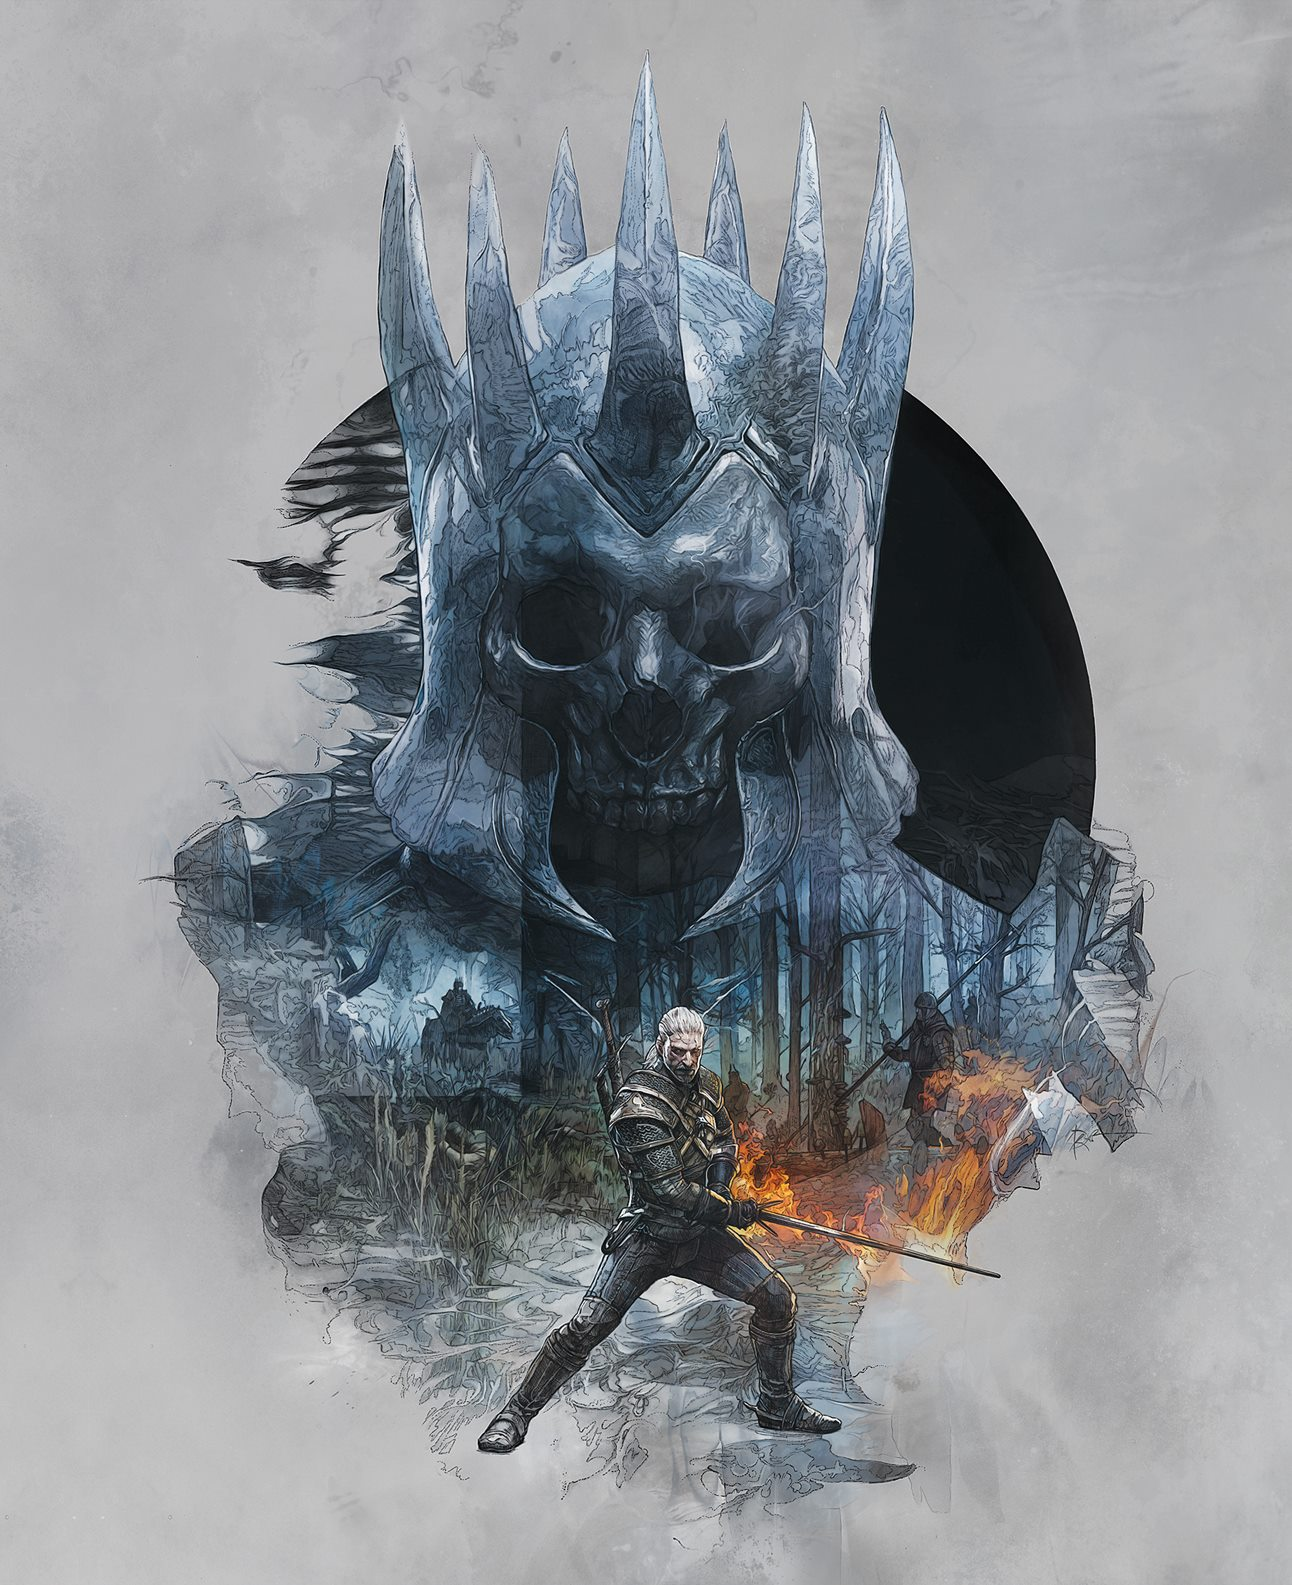 The Witcher 3 Skellige Cover Art